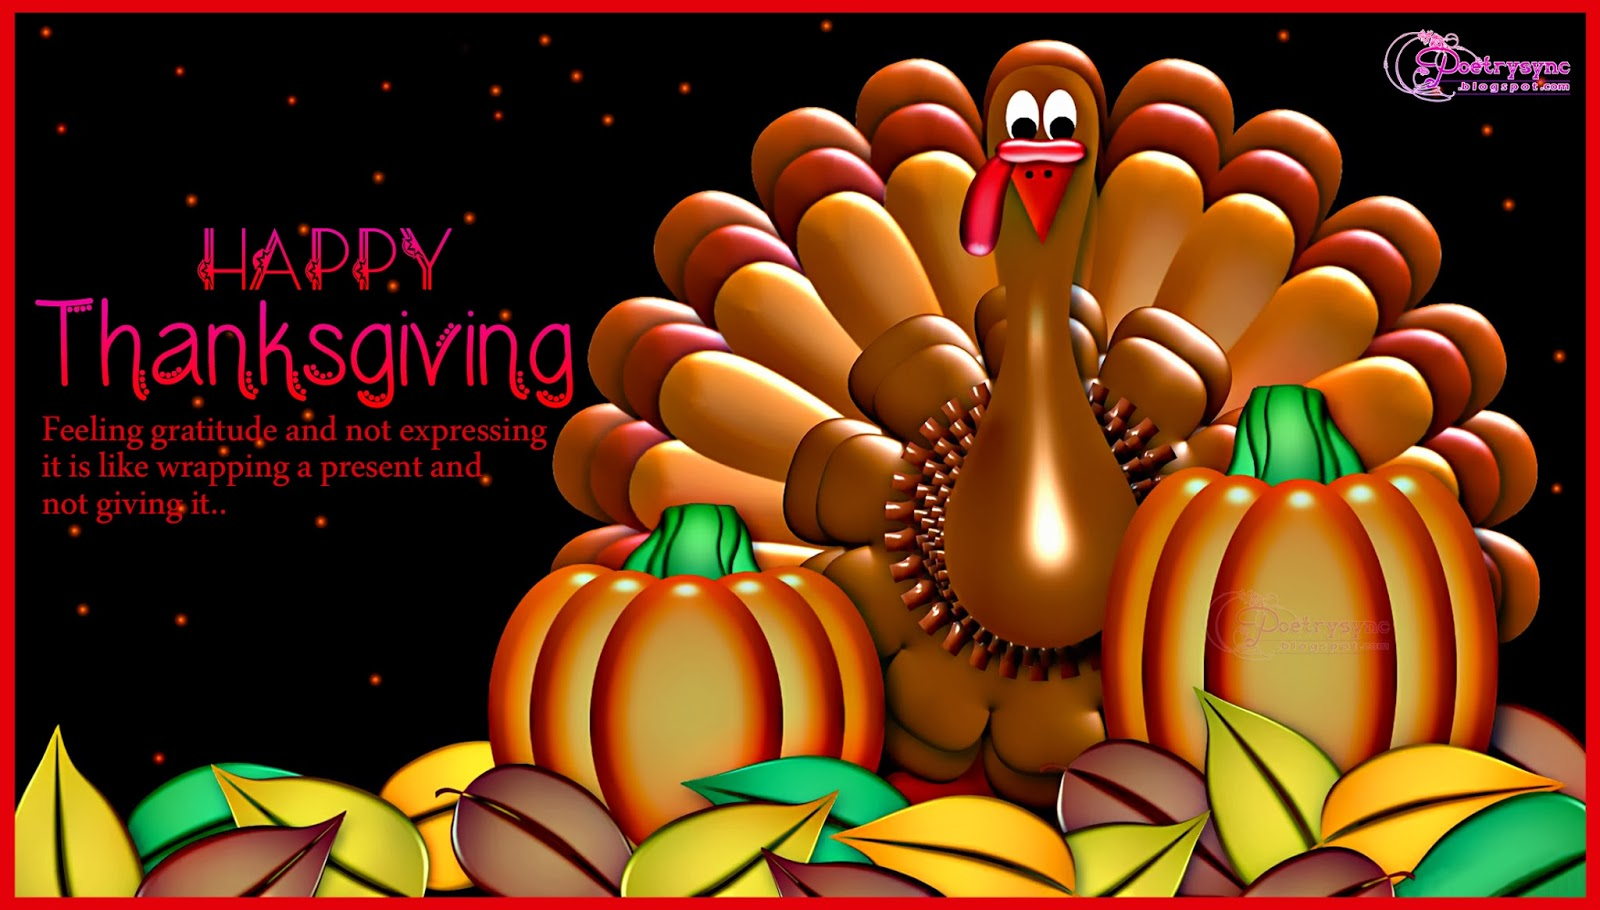 Thanksgiving day wishes quotes sayings messages sms greetings thanksgiving day wishes quotes sayings messages sms greetings cards pictures m4hsunfo